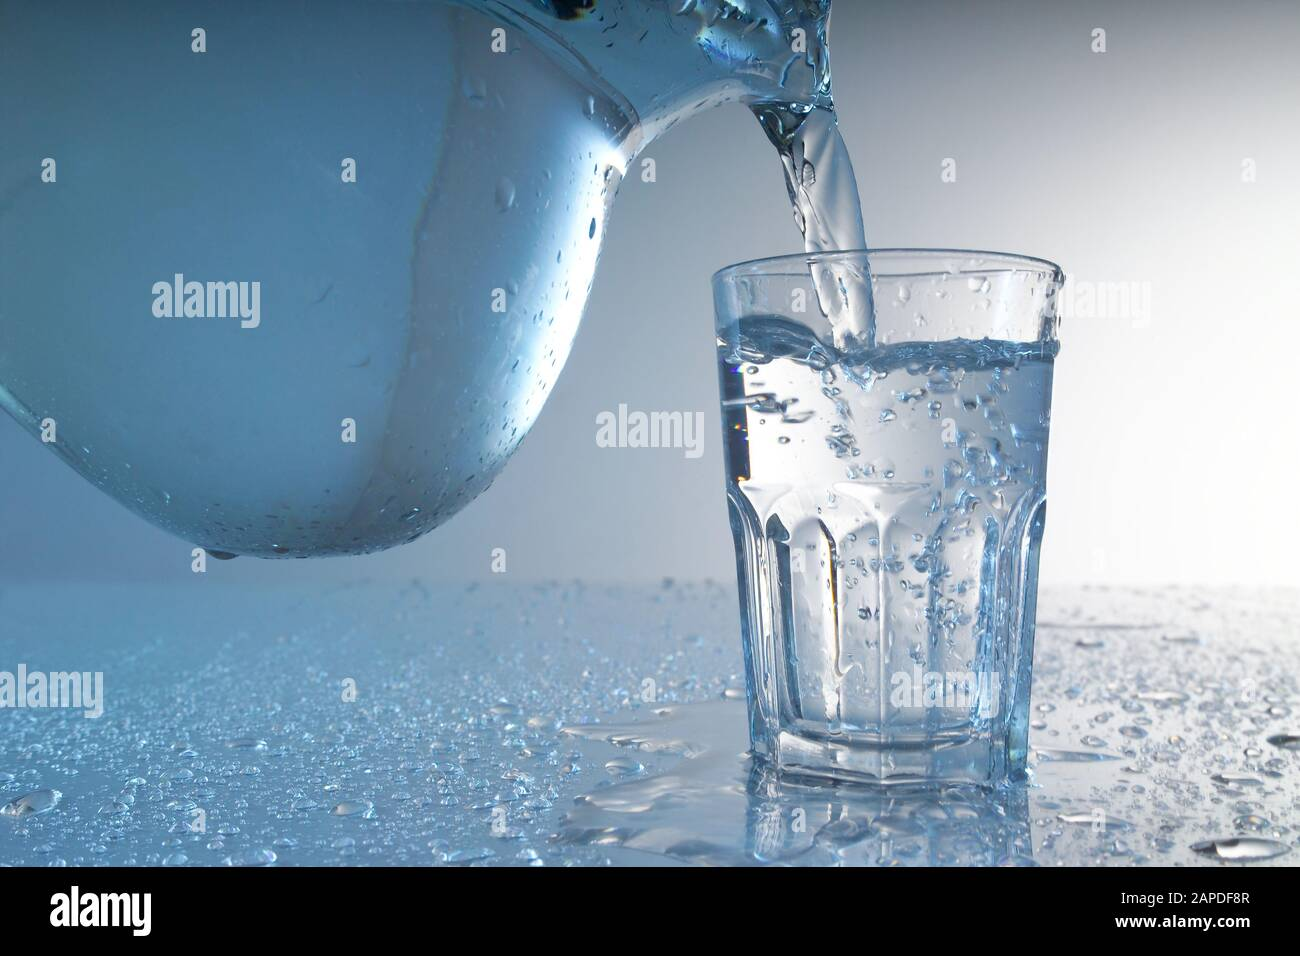 Wasser - Water Stock Photo